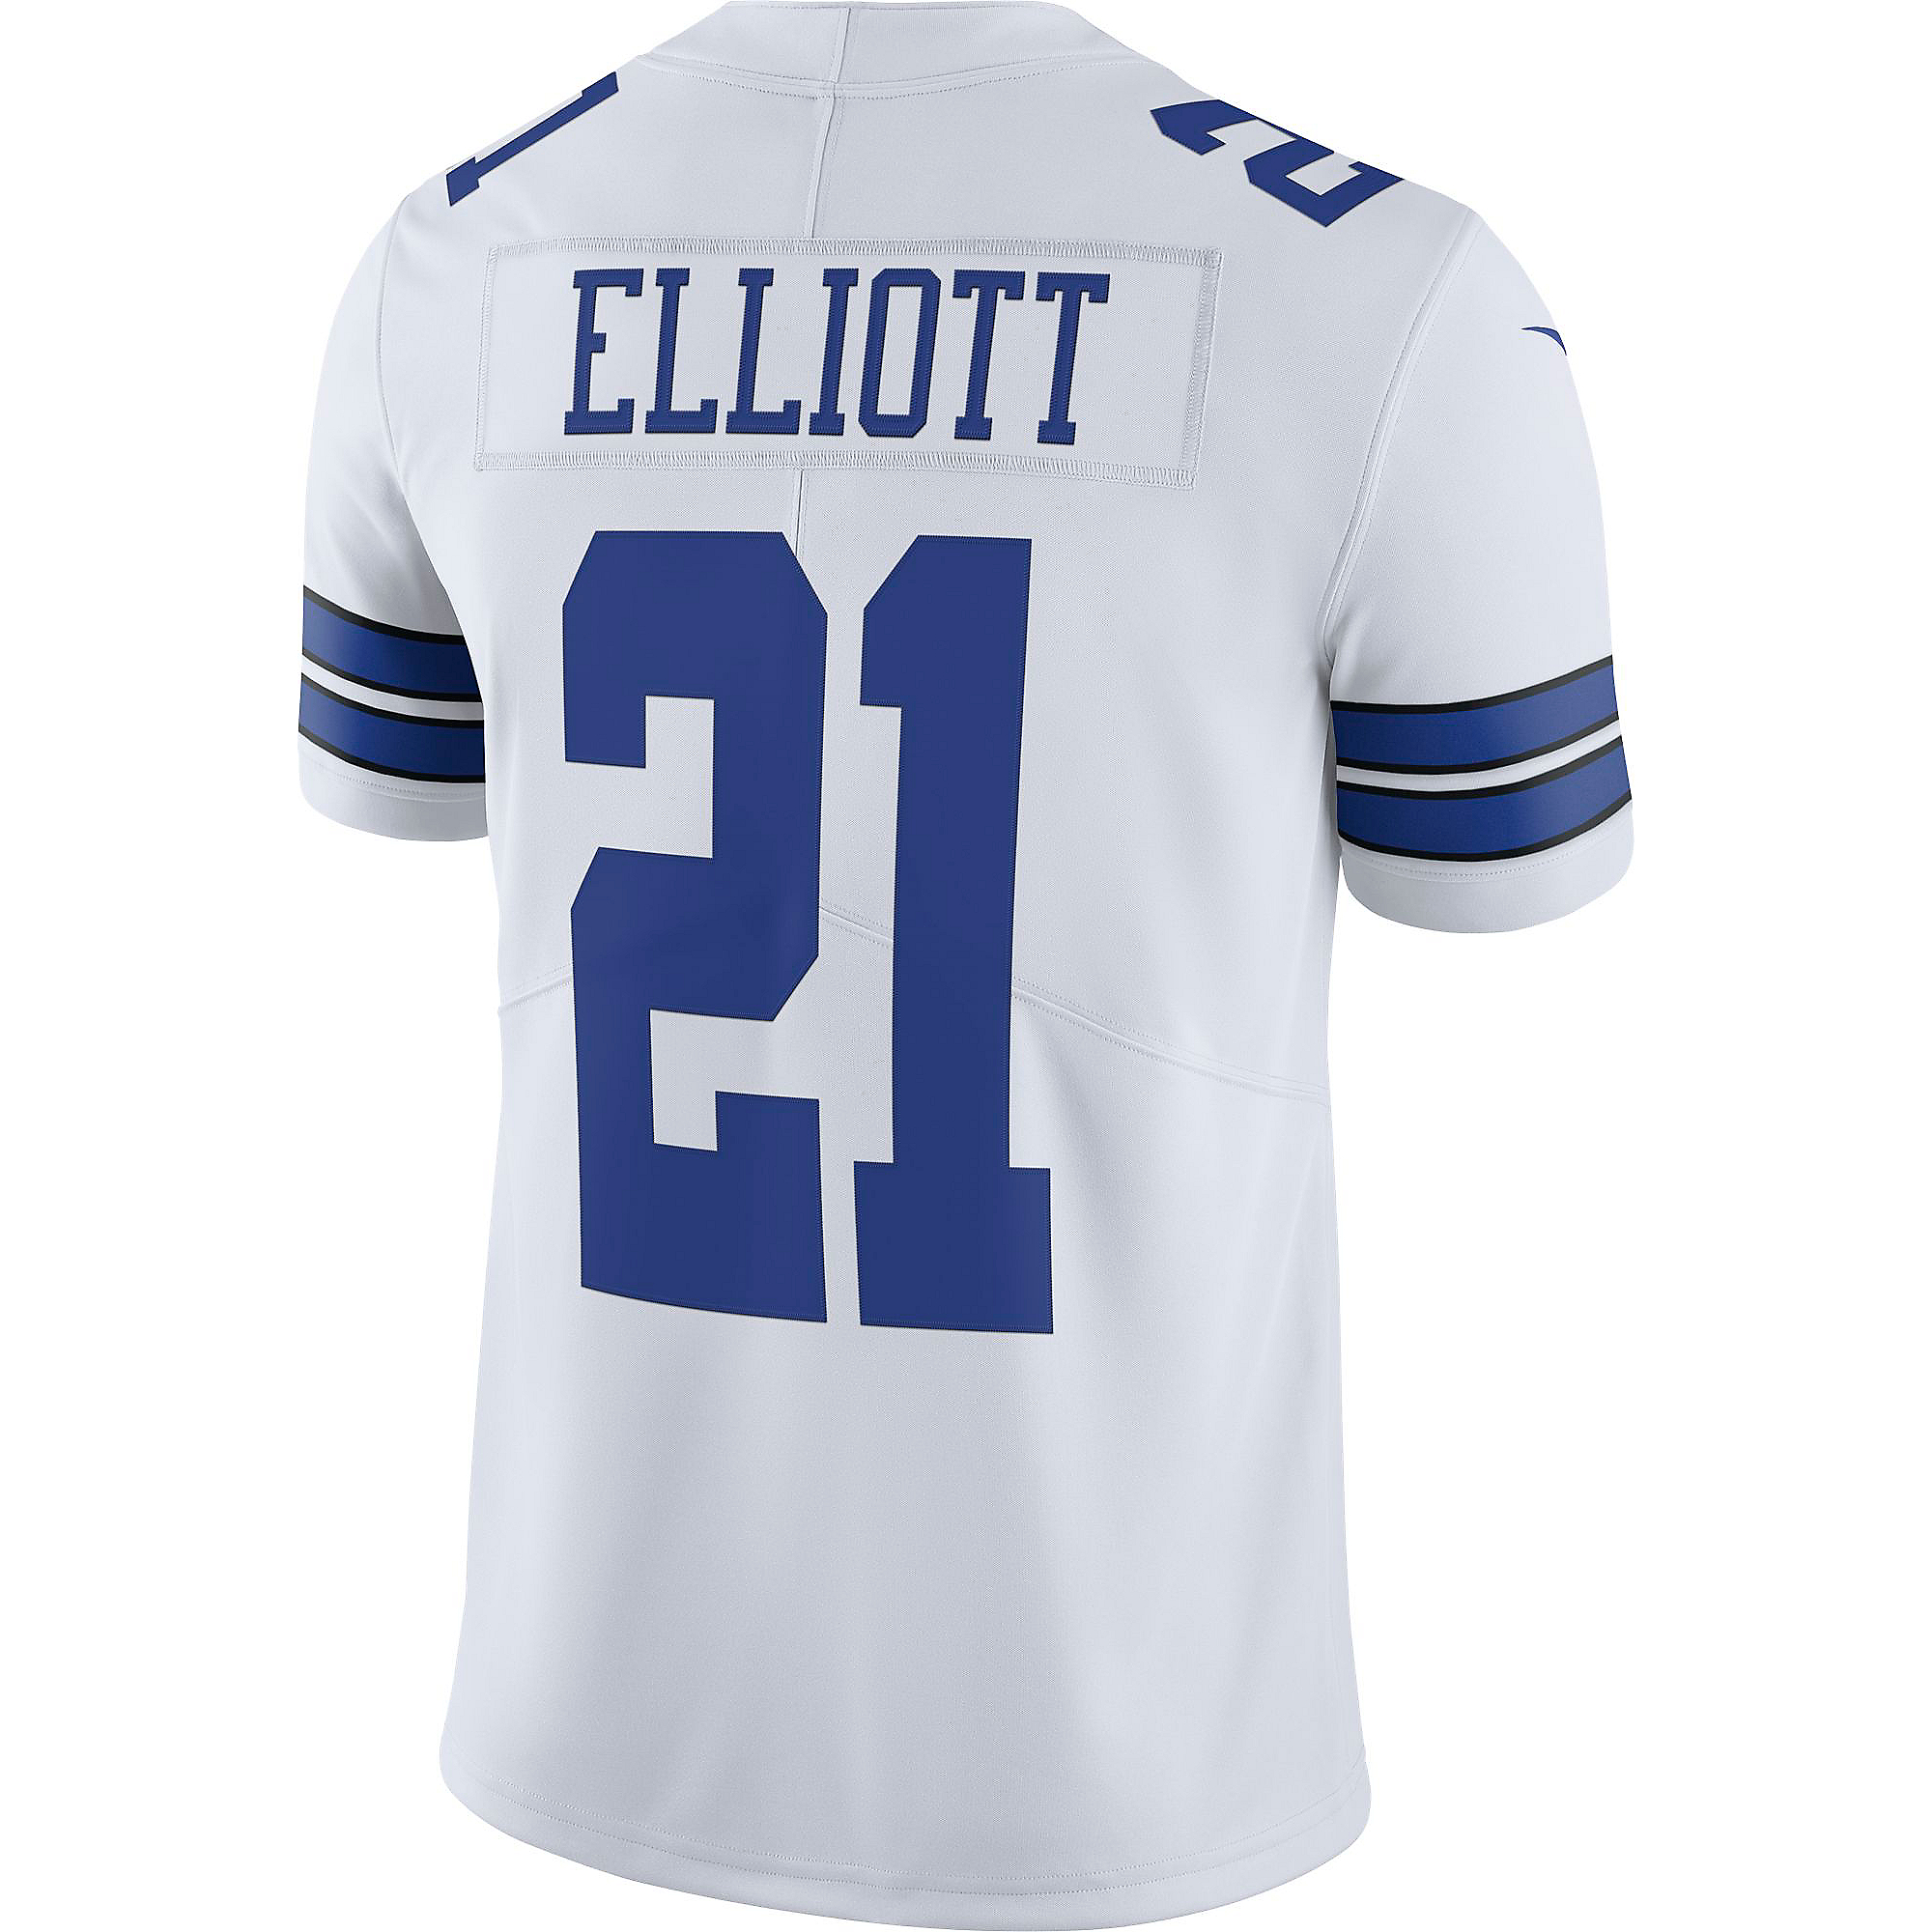 3a22735897c Dallas Cowboys Ezekiel Elliott #21 Nike Vapor Untouchable White Limited  Jersey